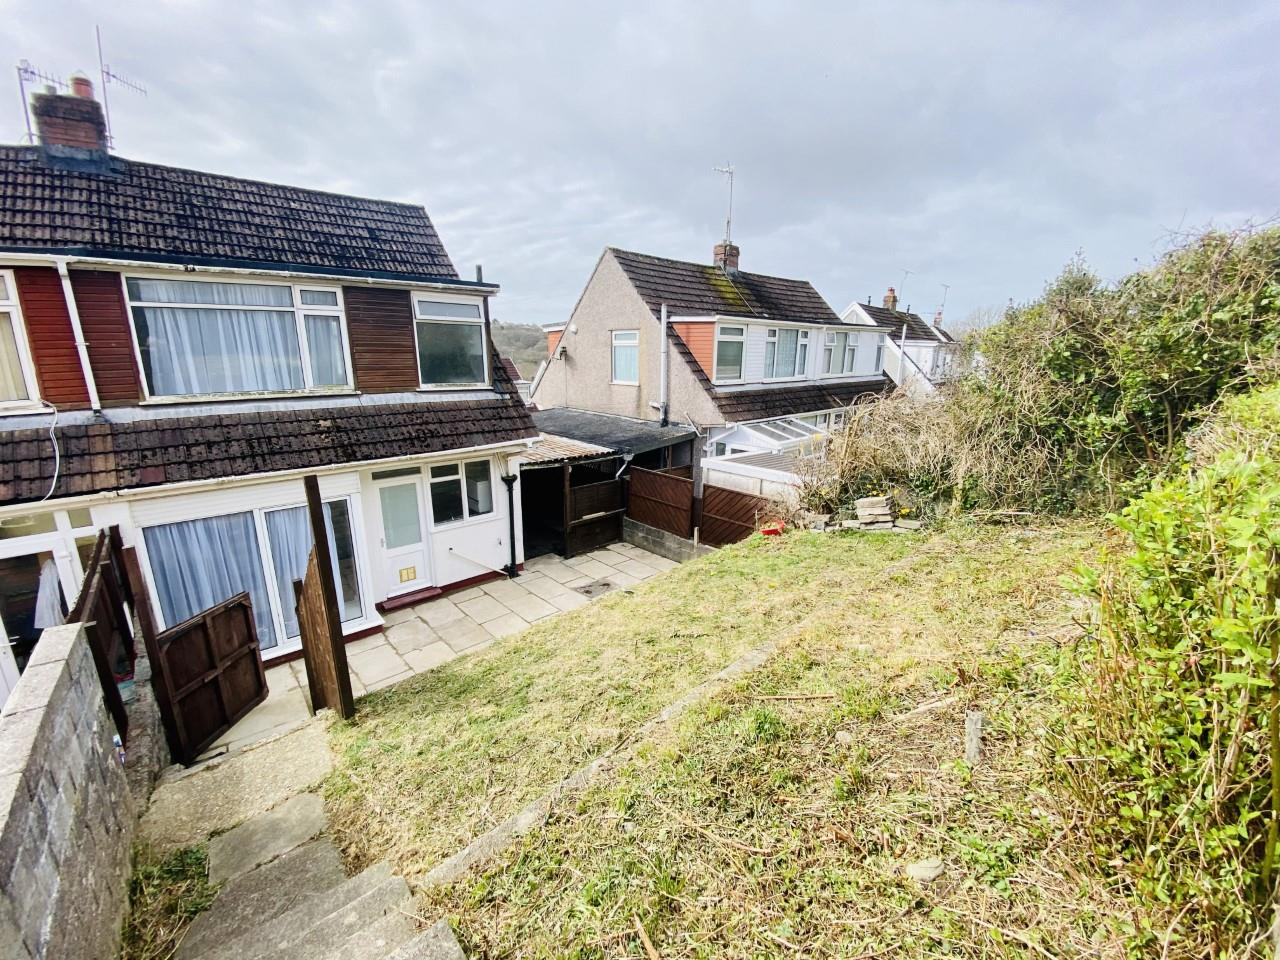 St David Drive, Killay, Swansea, SA2 7EN